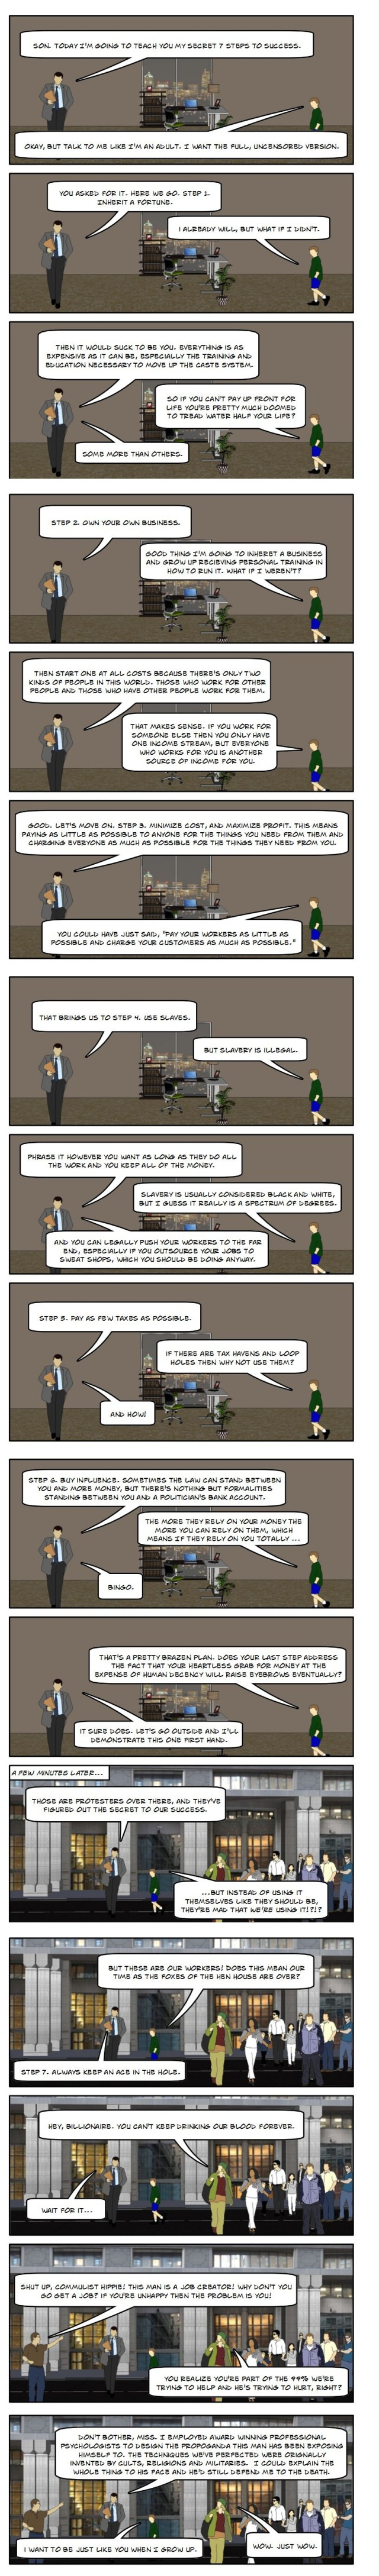 (Comic) How Becoming A Billionaire Works